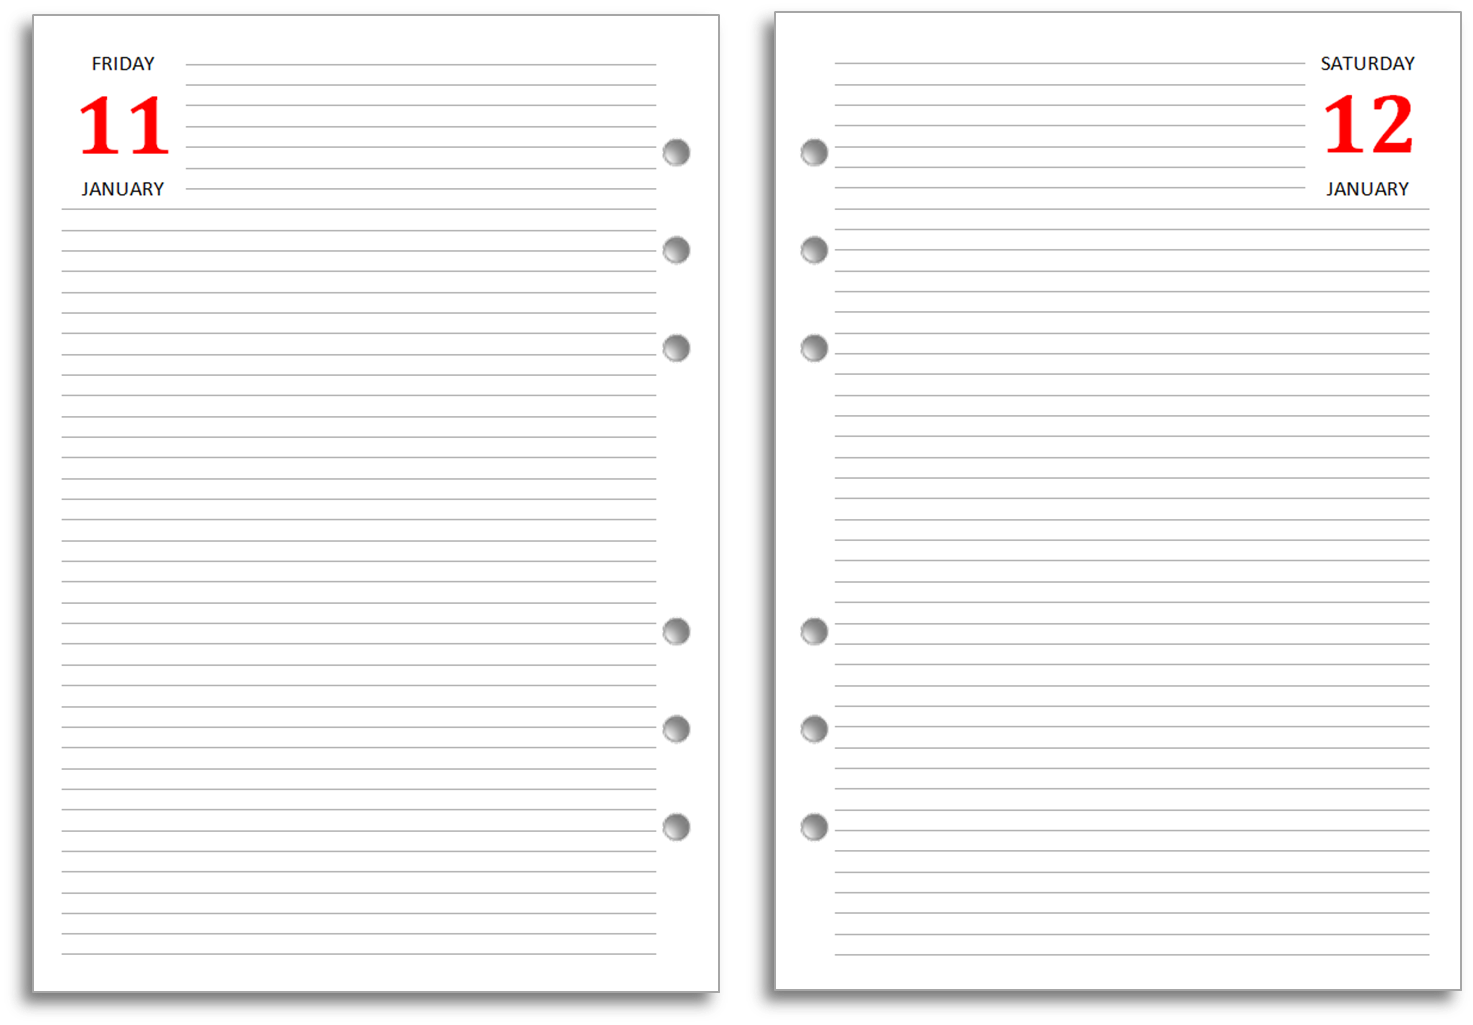 My Life All in One Place: How to Use a Filofax